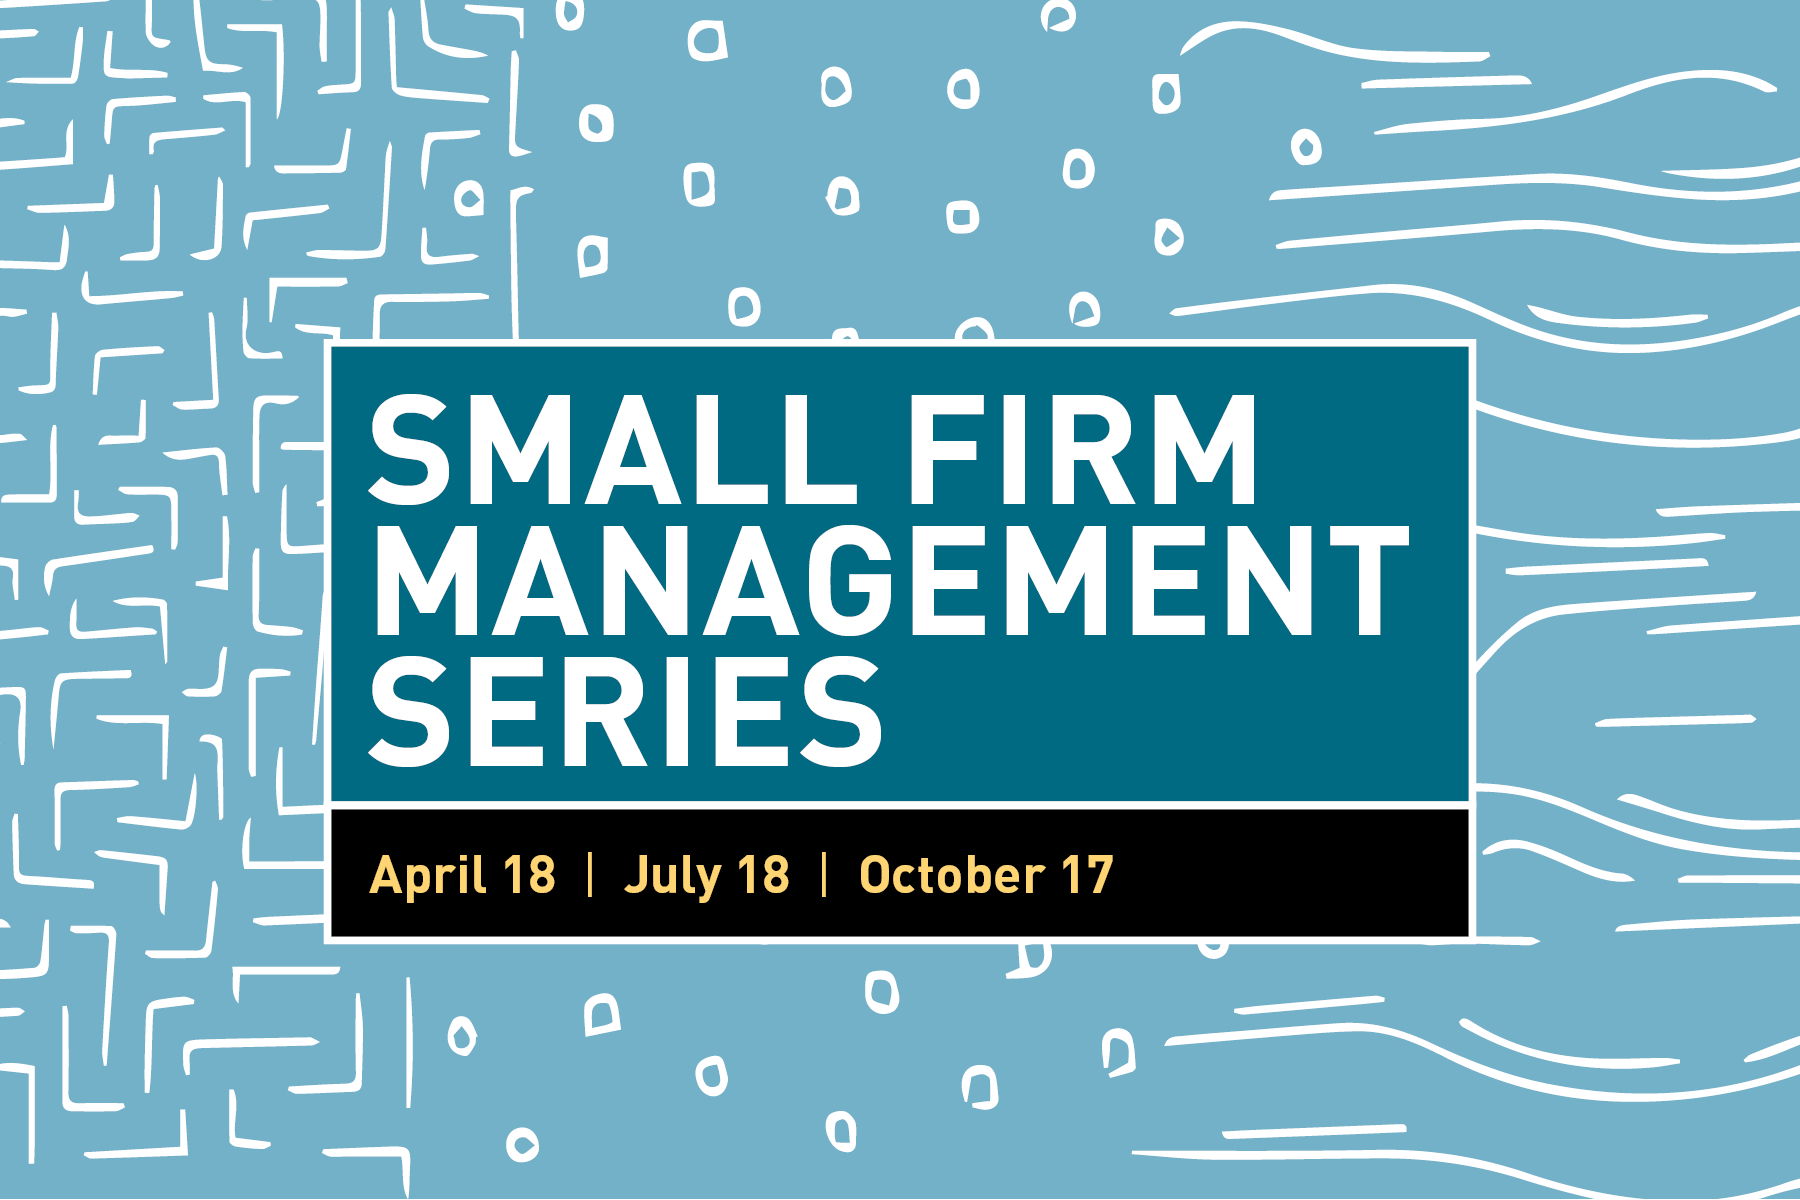 In this 3-part Small Firm Workshop series, Rena M. Klein and her colleagues at Charrette Venture Group will offer foundational knowledge, strategies, tools and resources for successful small firm management. Ideal for small firm architects and owners, these highly interactive half-day sessions will include informative presentations, case study examples, workshop activities and ample time for peer-to-peer discussion.